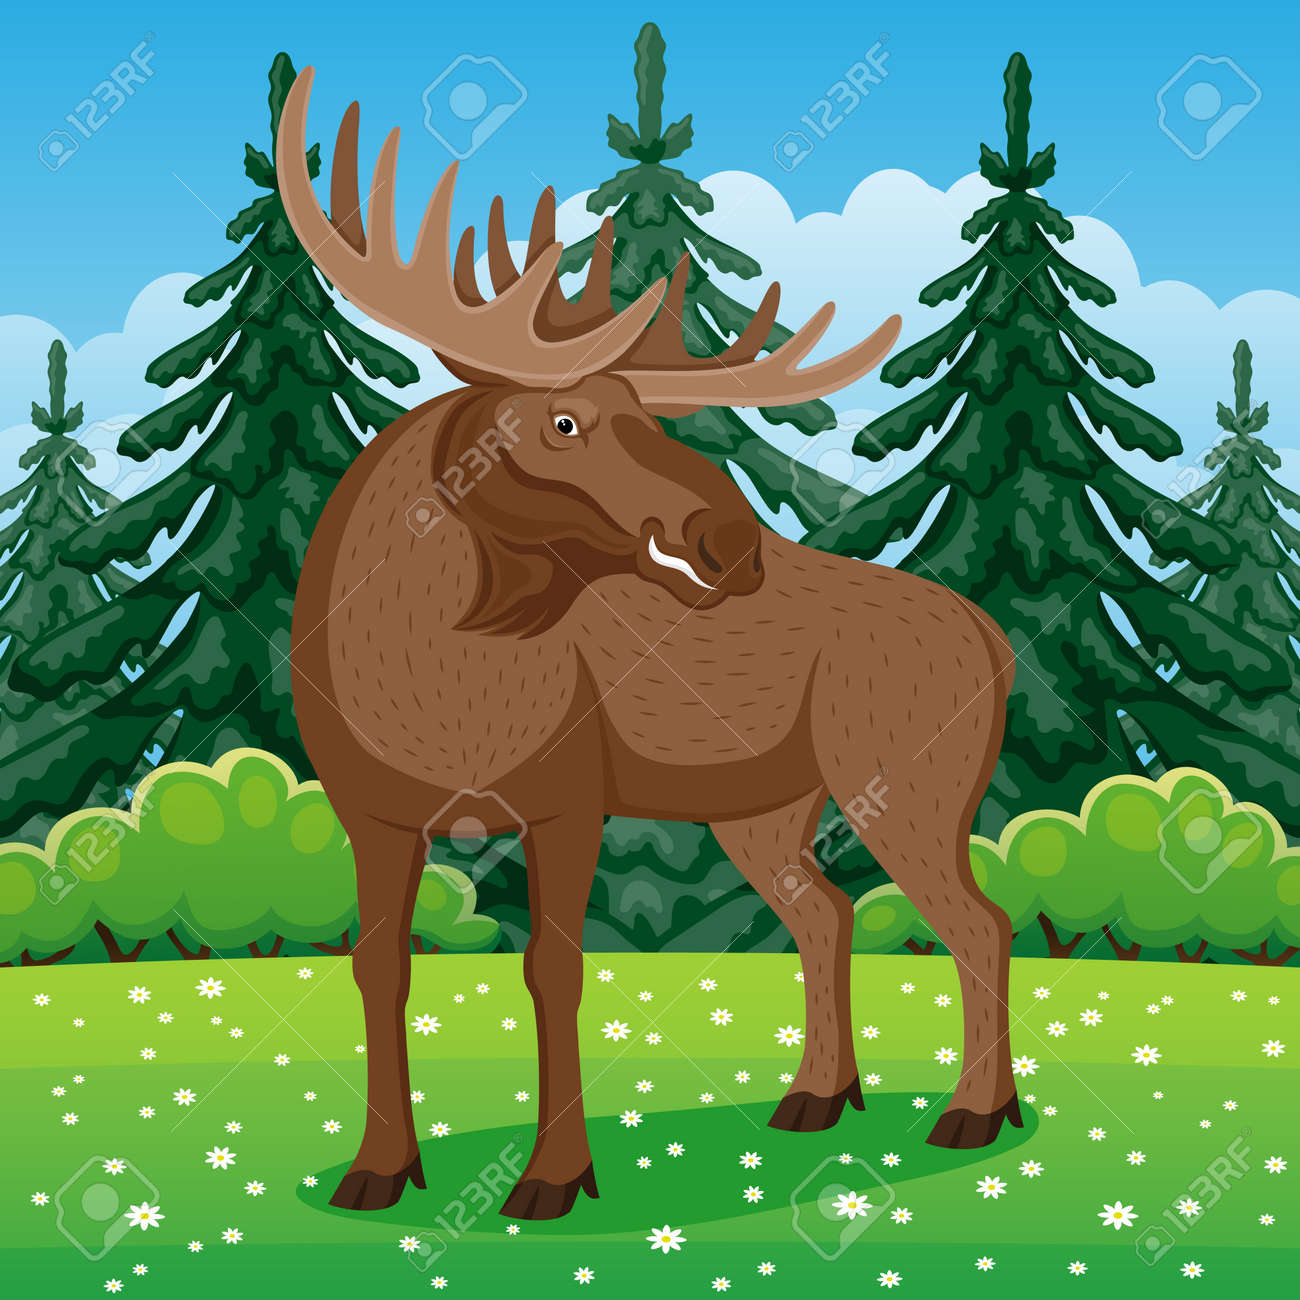 Nature illustration with moose on grass in coniferous forest. - 166379853